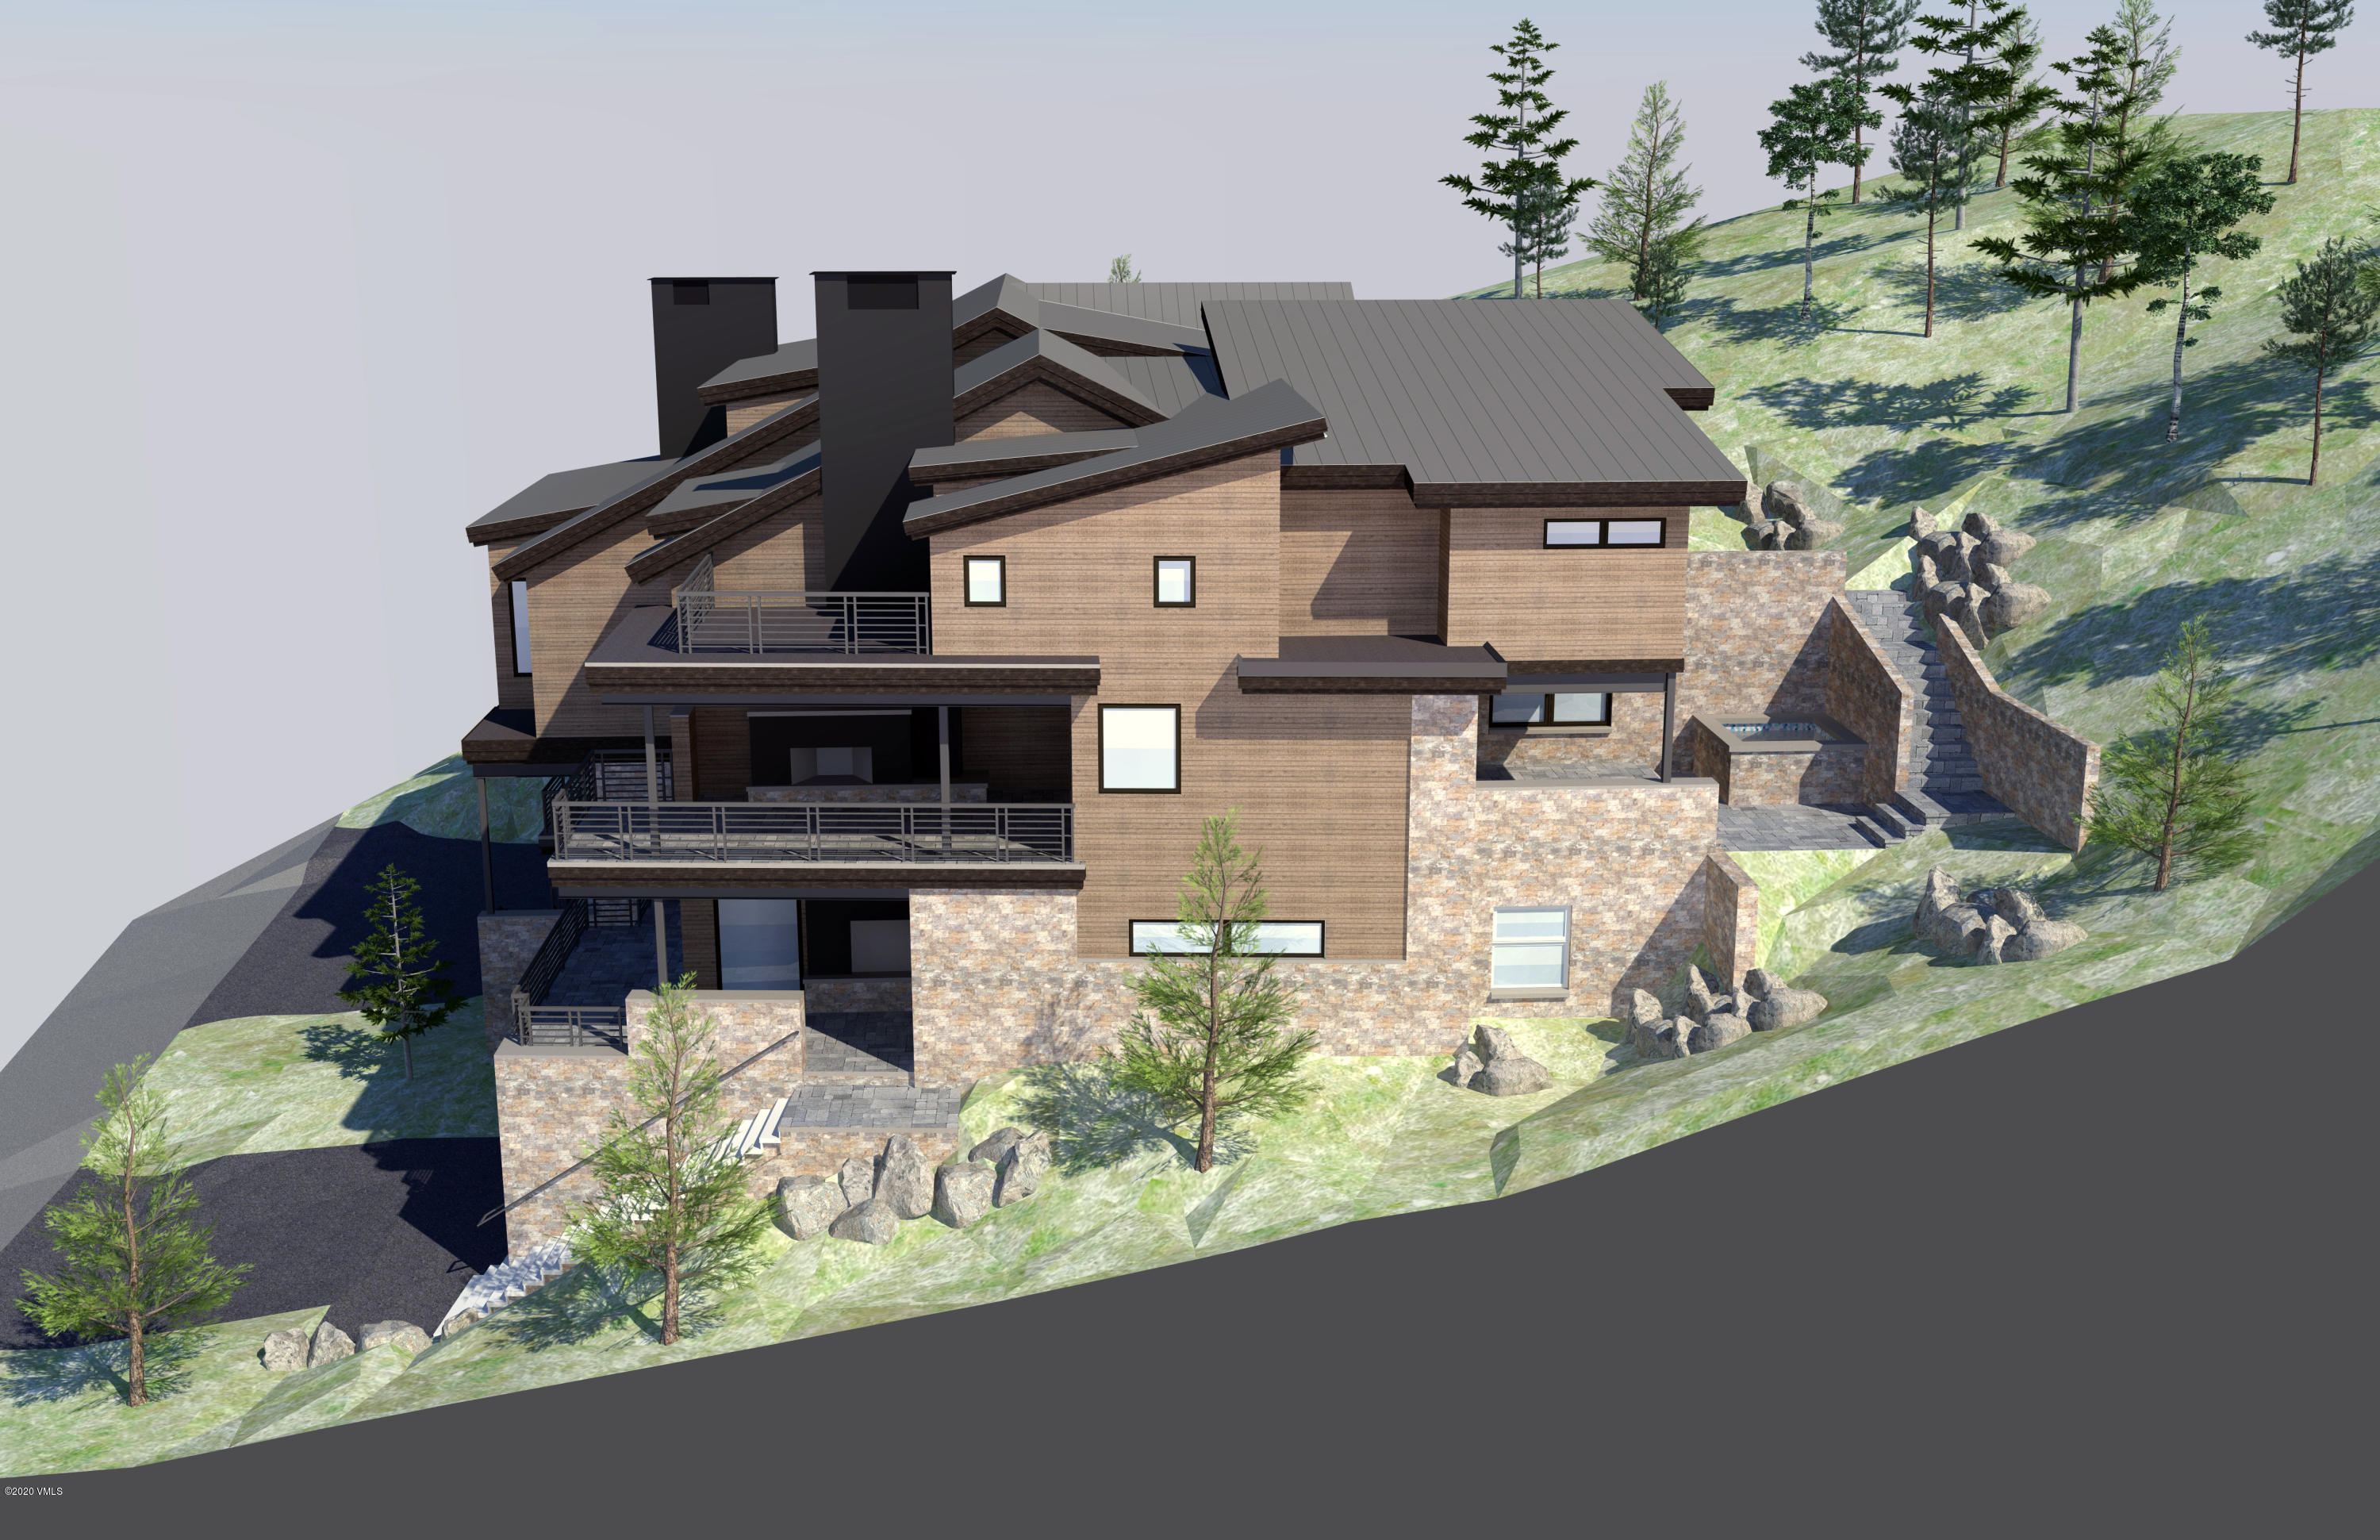 Proprty image for 706 Forest Road Unit B